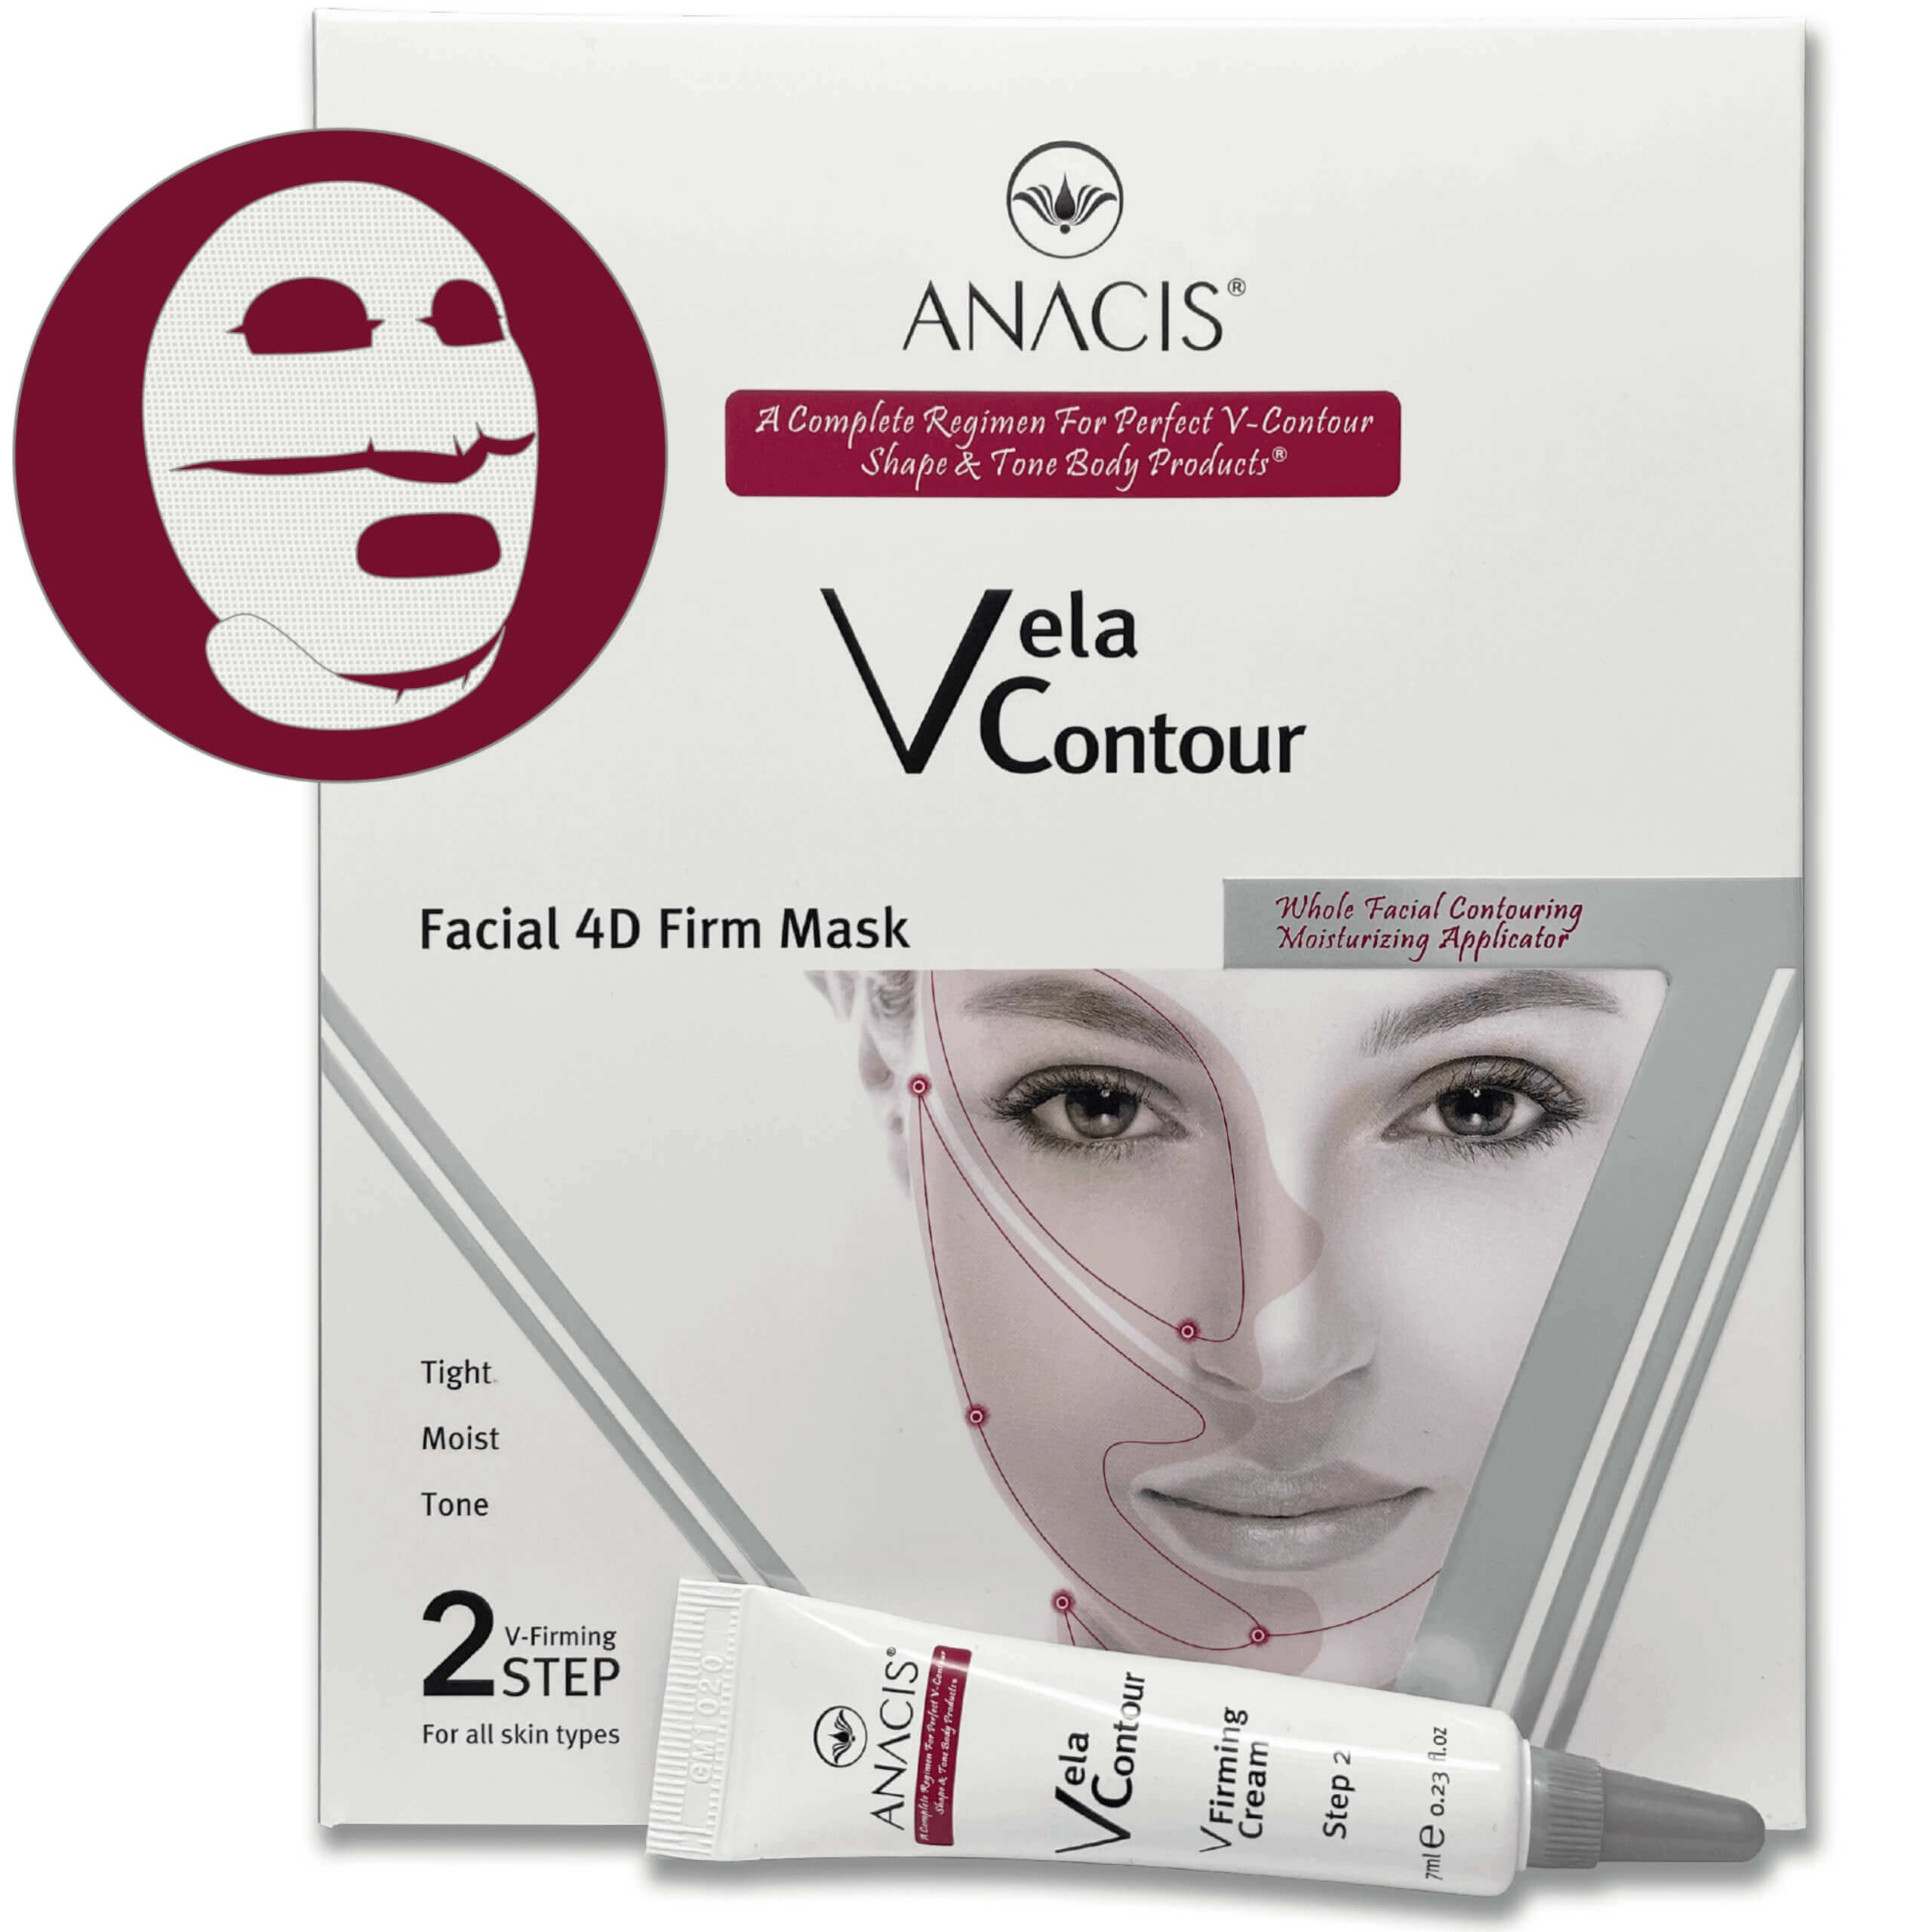 Two-Step Anti-Aging Face and Neck Firming Mask and Cream Moisture Tone Radiance Made in Korea. ANACIS